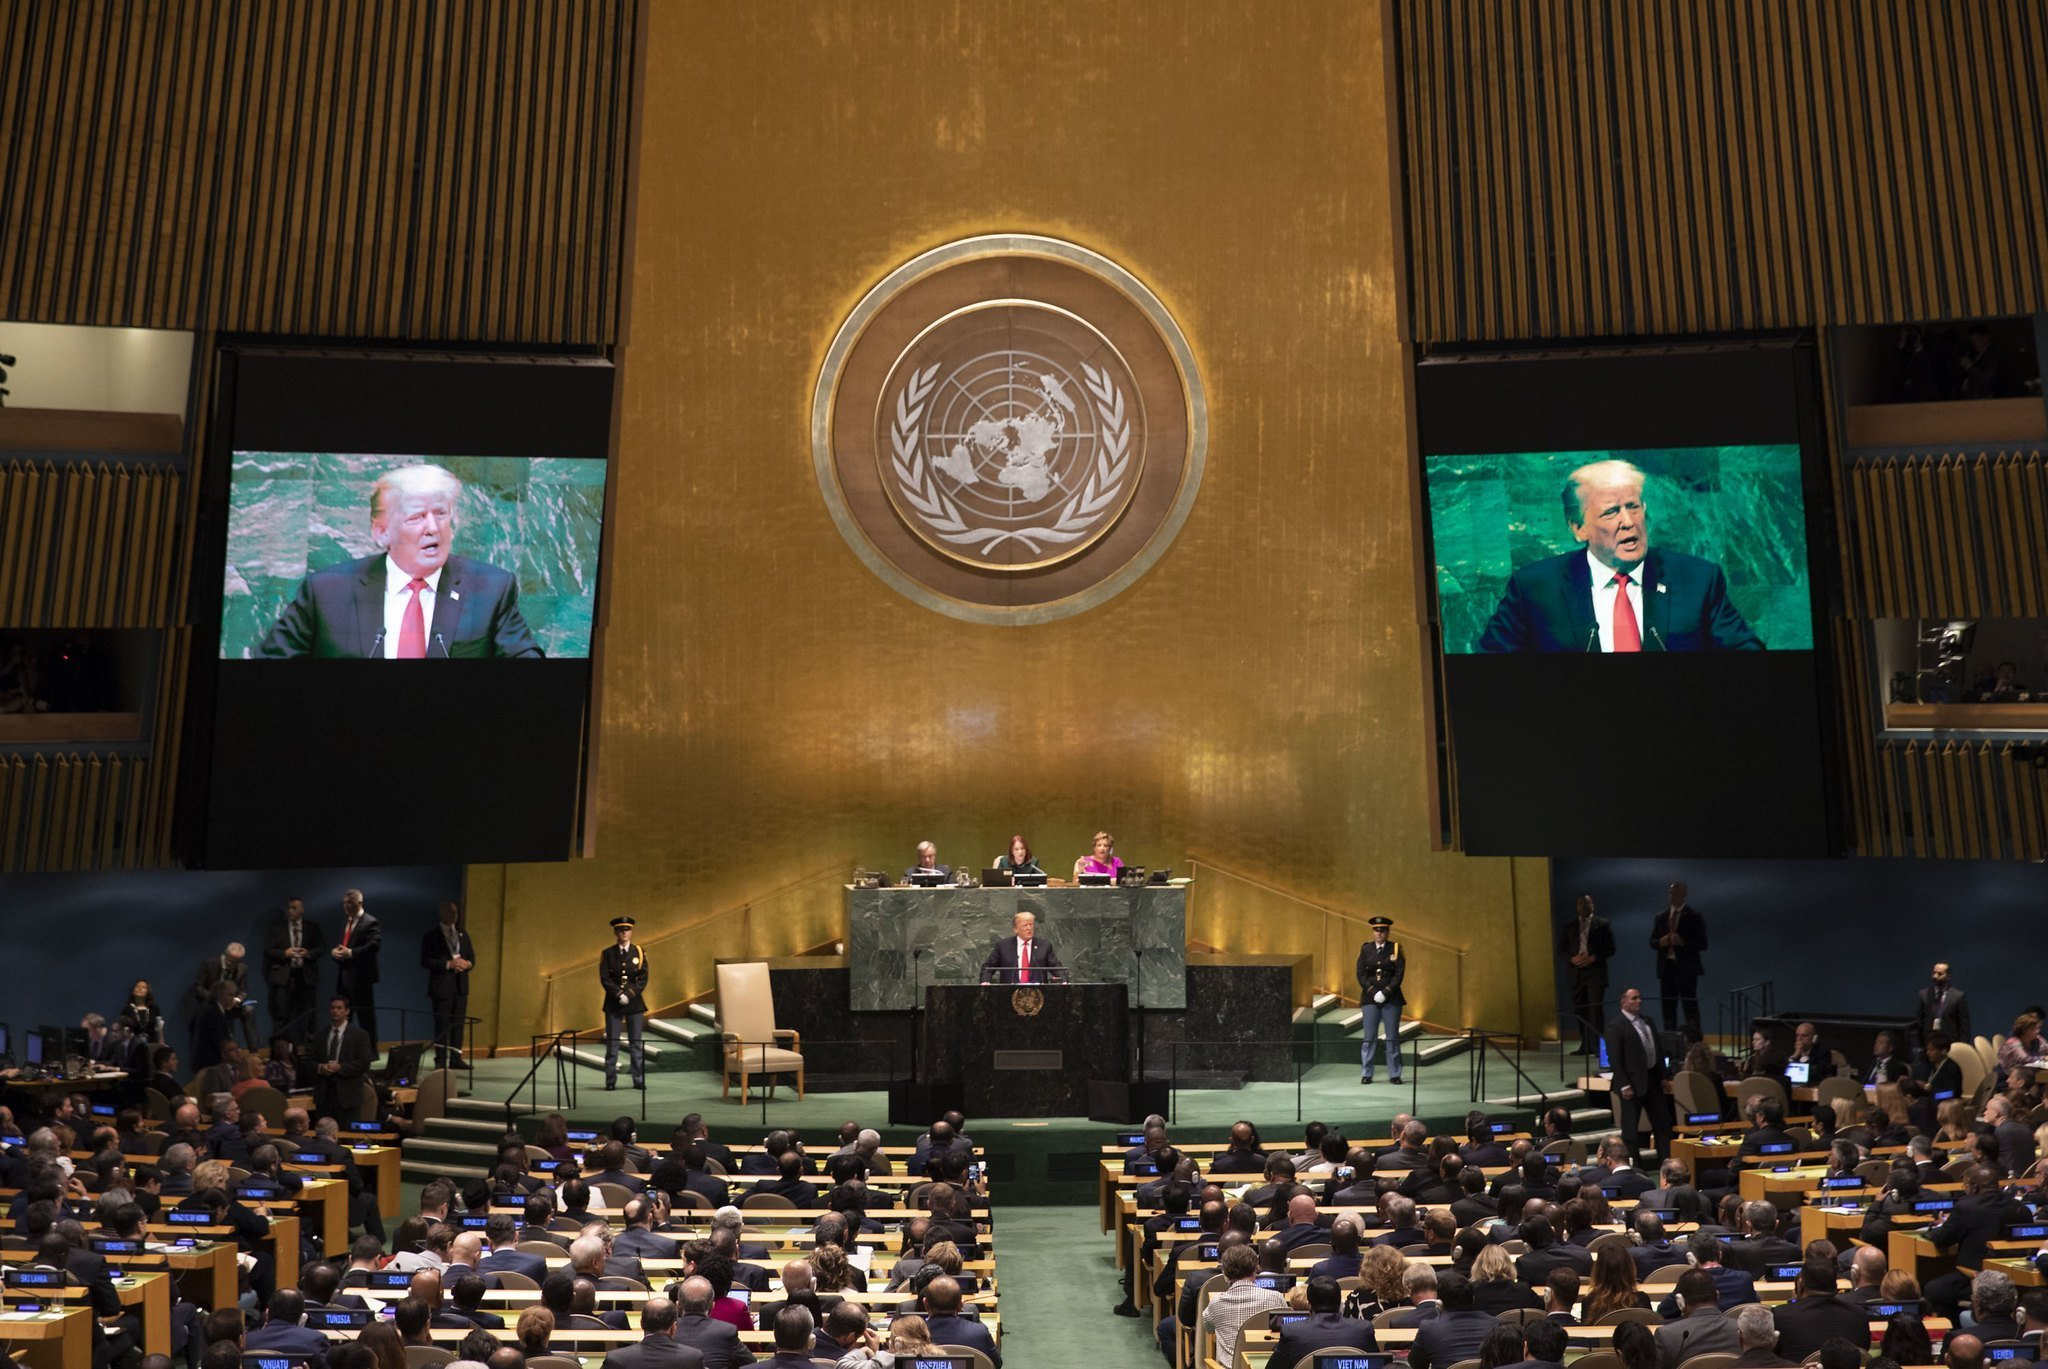 UN General Assembly: The Four Key Global Issues to Watch For - Citizen Truth